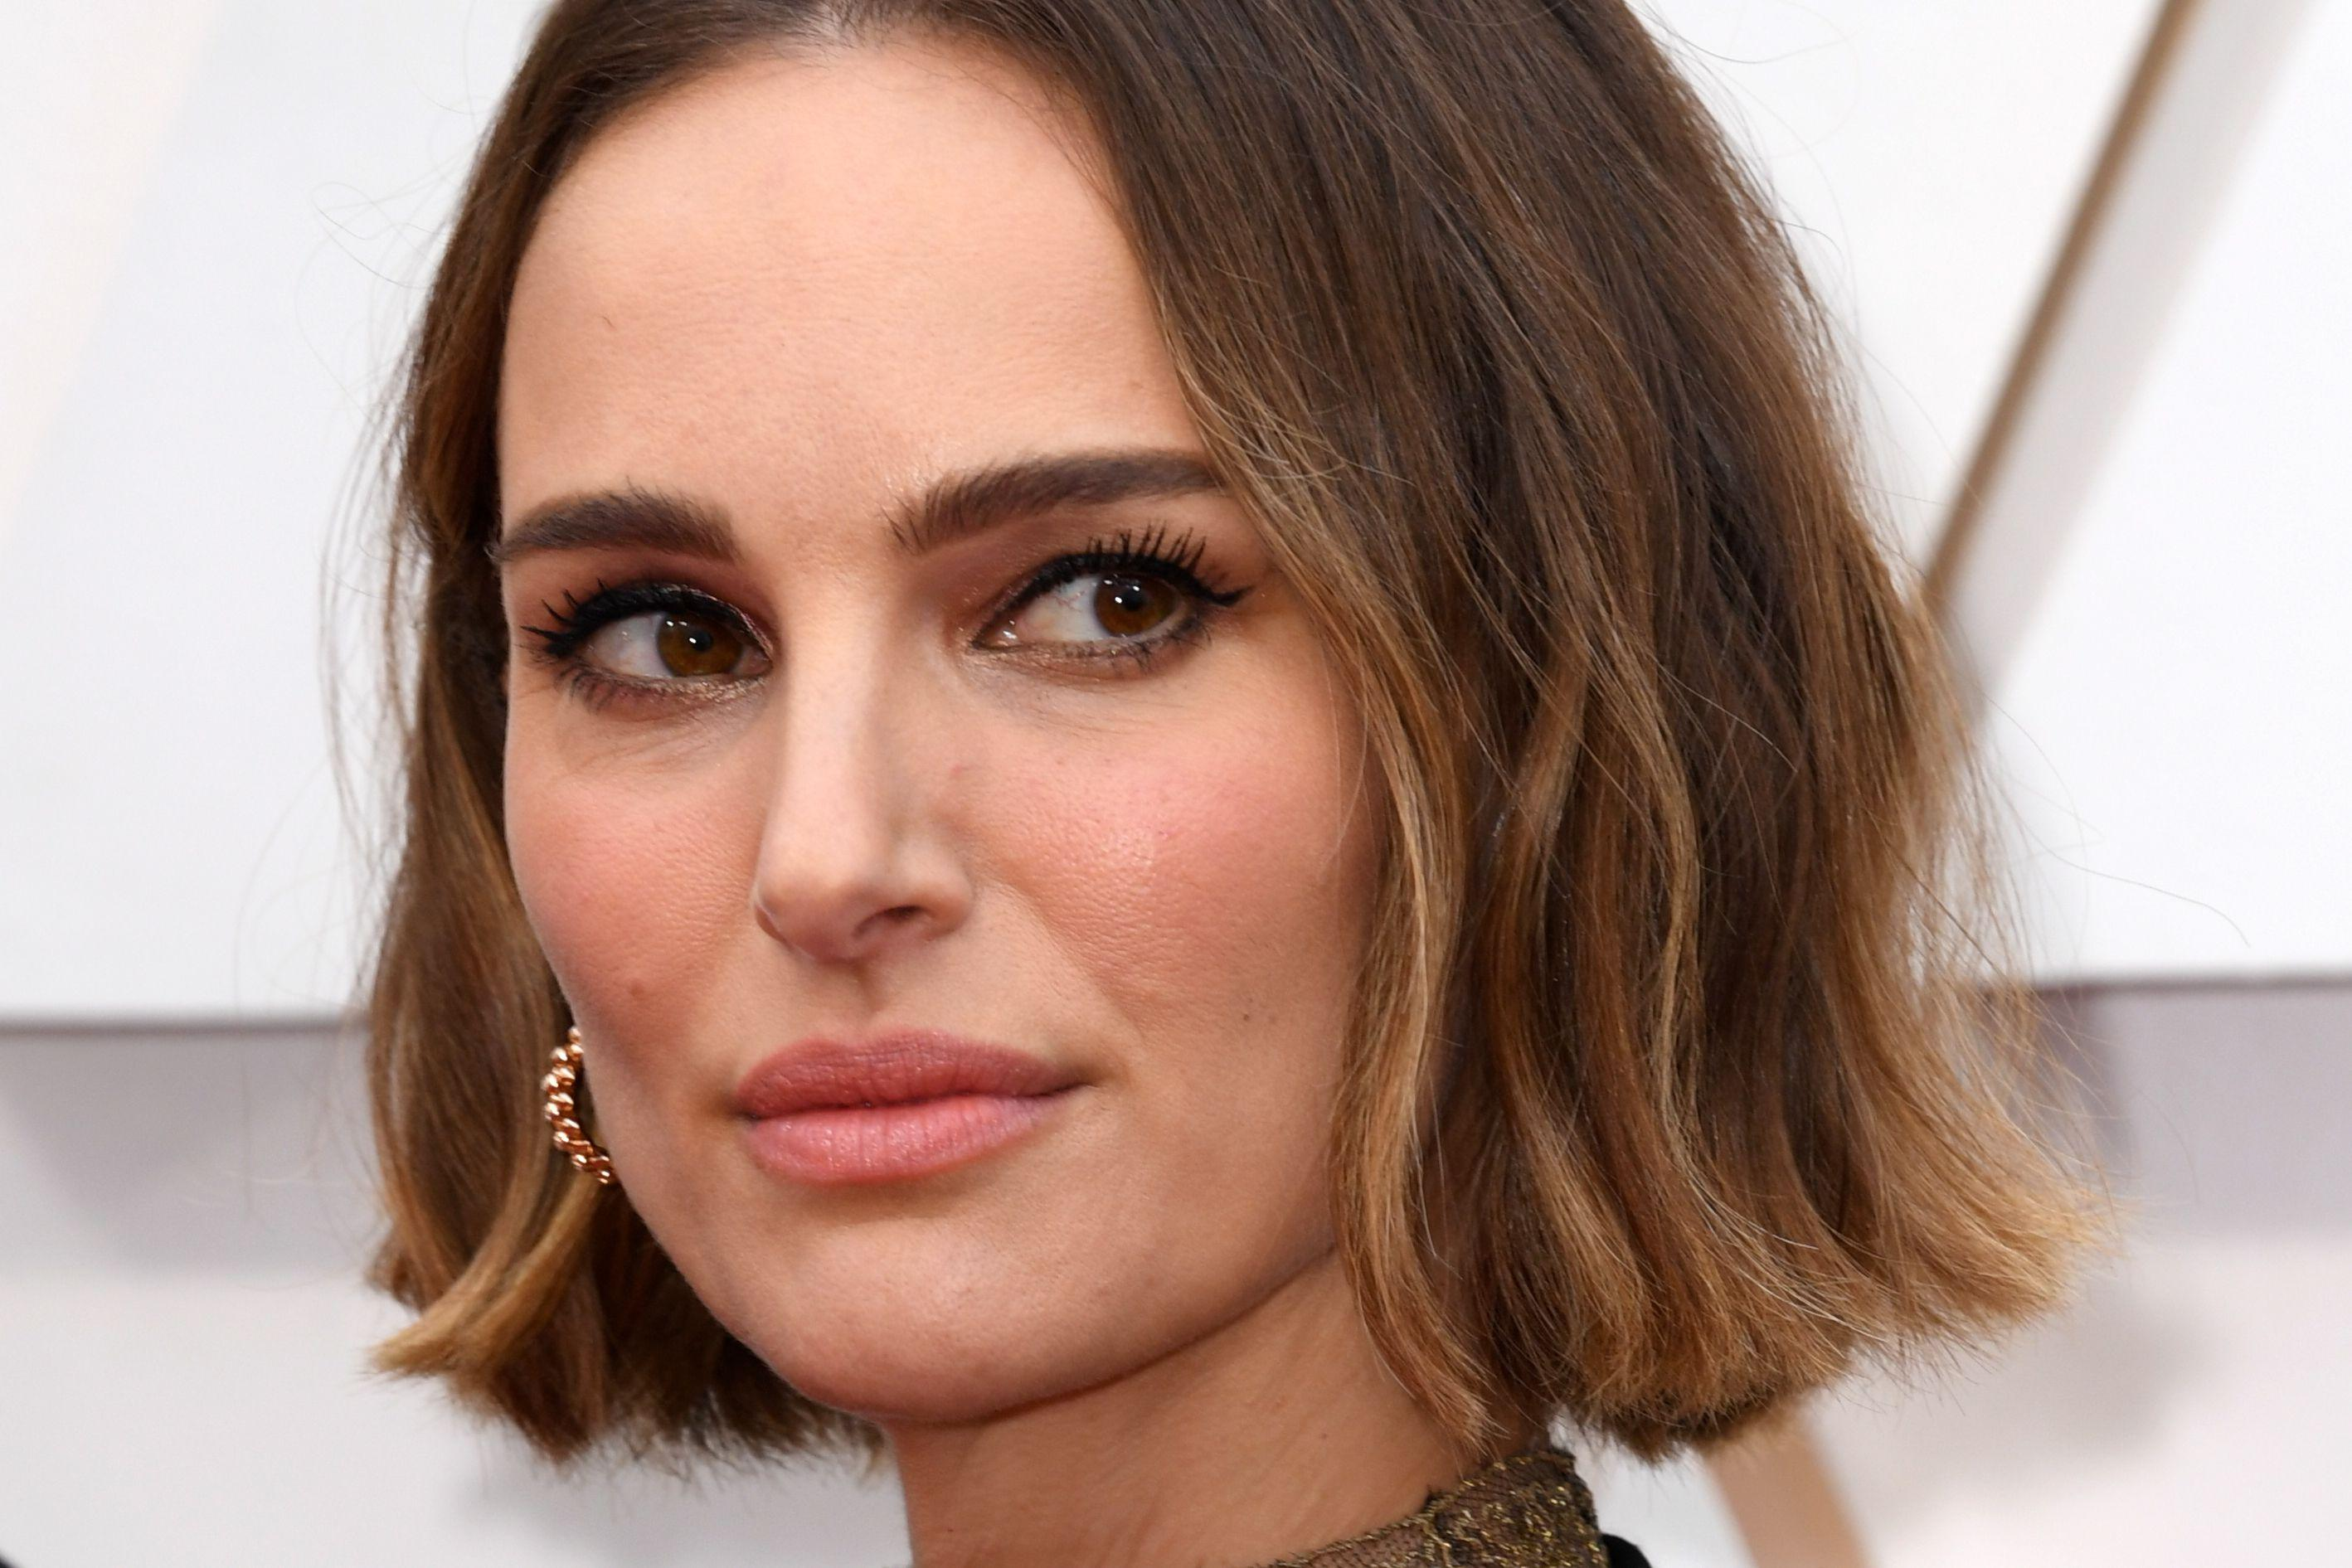 Caped crusader: who is the real target of Natalie Portman's reply to Rose McGowan?